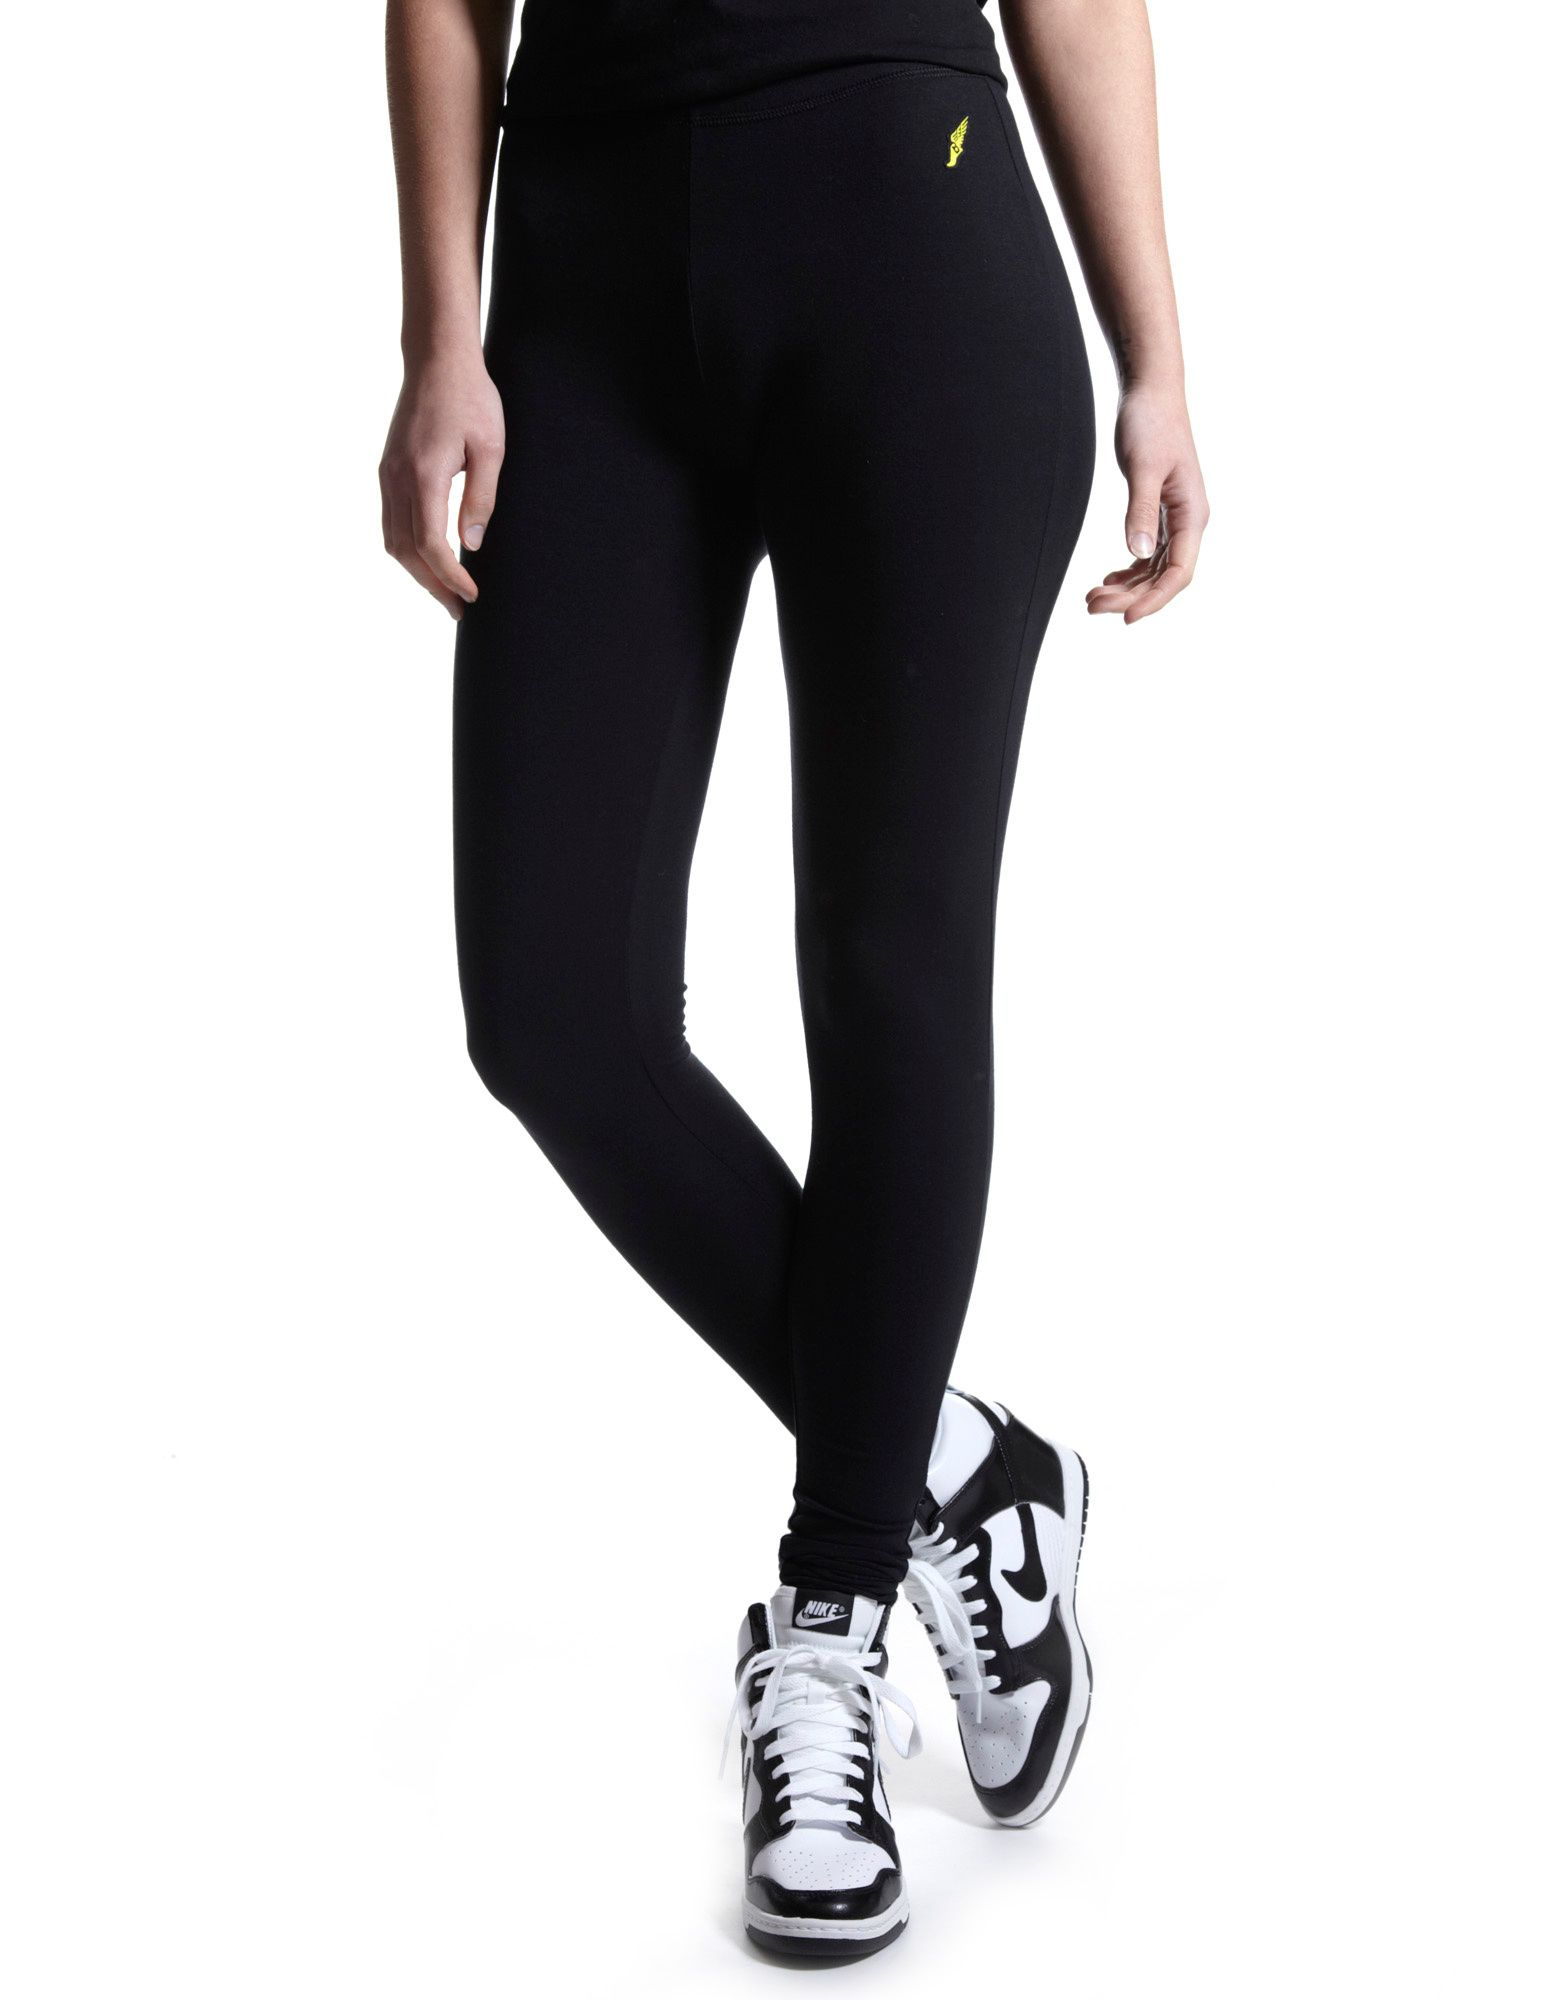 Brookhaven Leona 2 Leggings- Black